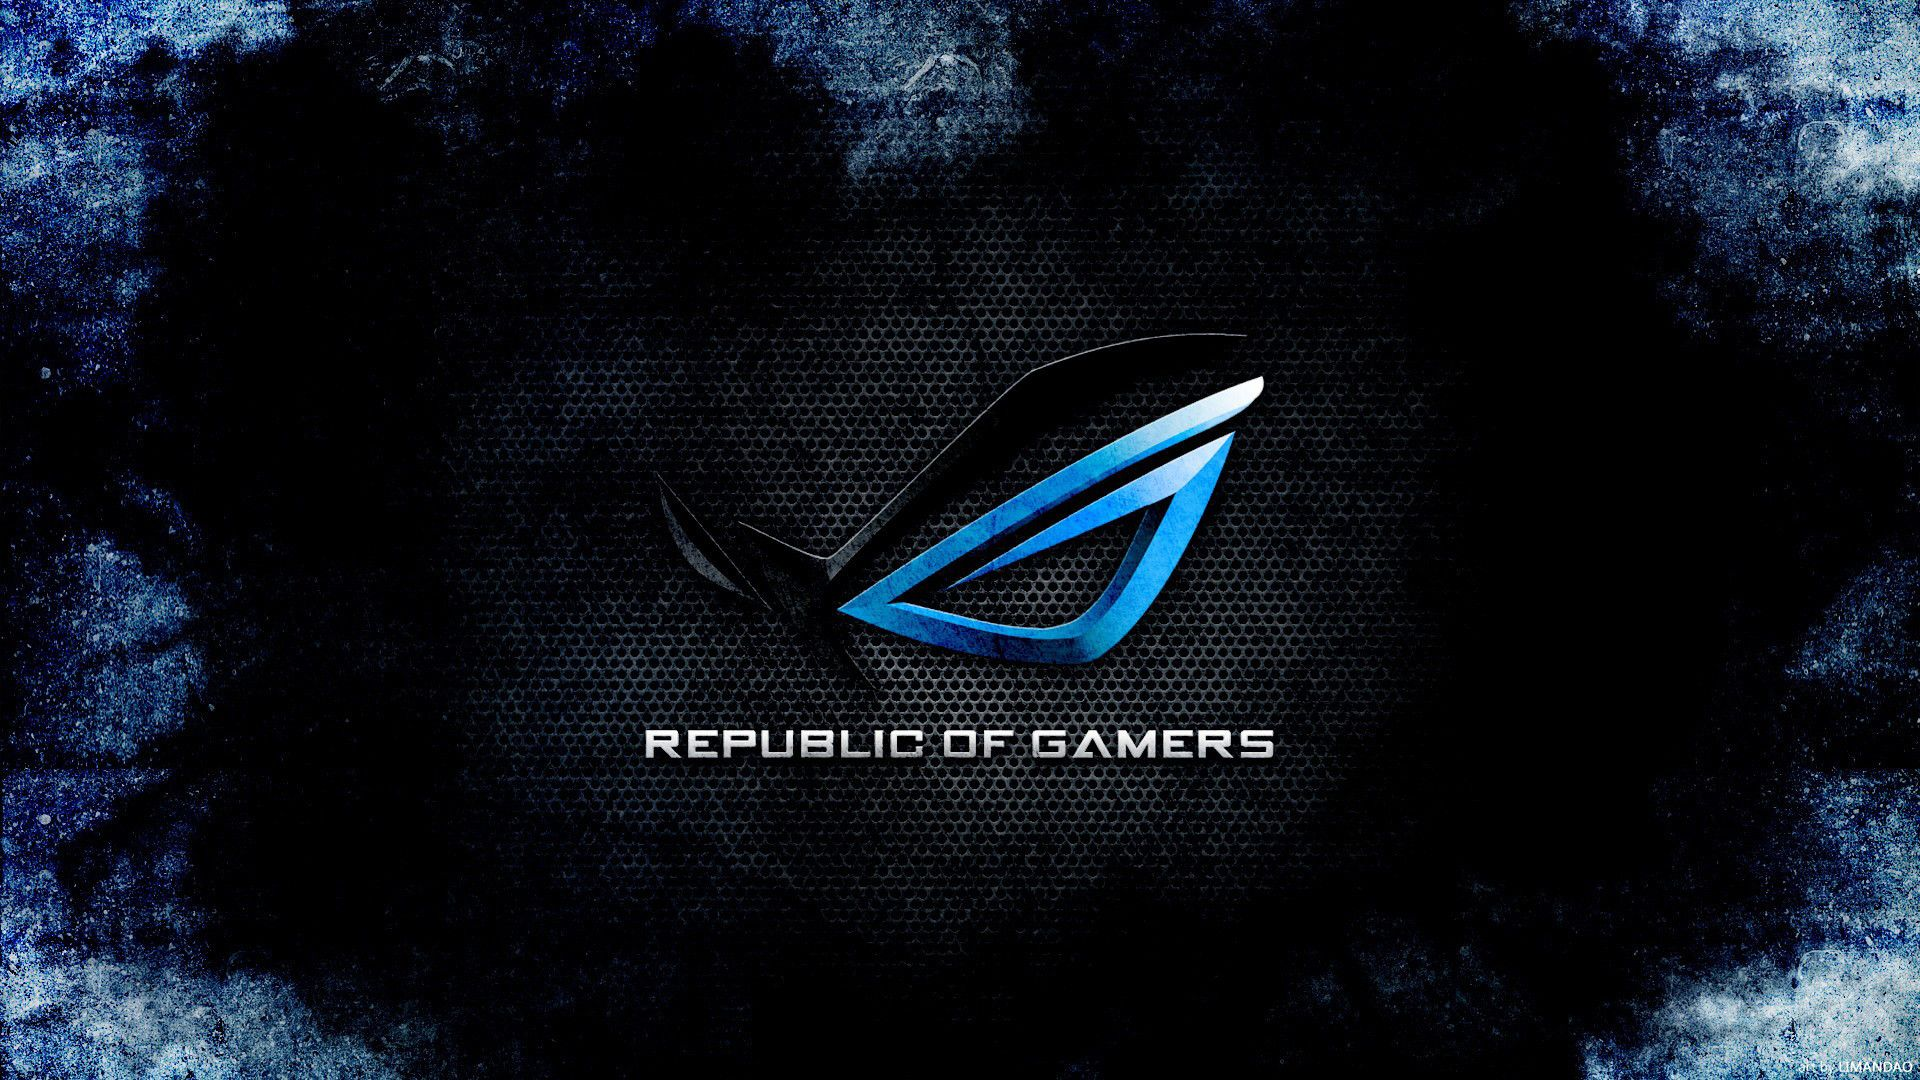 78 Blue Gaming Wallpapers On Wallpaperplay In 2020 Gaming Wallpapers Black And Blue Wallpaper Blue Wallpapers